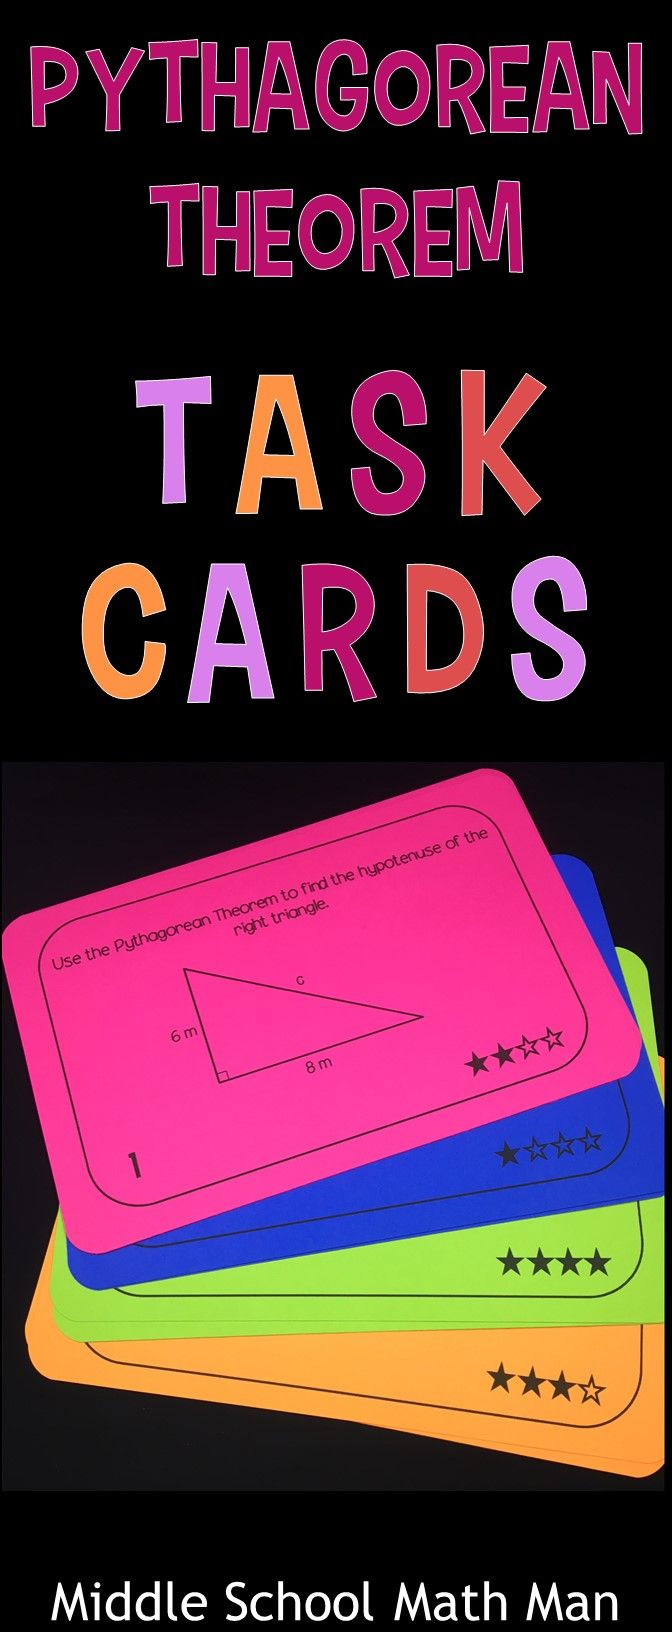 This set of Pythagorean Theorem Task Cards includes 52 different task cards that require students to use the Pythagorean Theorem to determine if a triangle is a right triangle as well as find the missing side lengths of triangles. The cards include four different difficulty levels, marked by the number of stars on the task card.